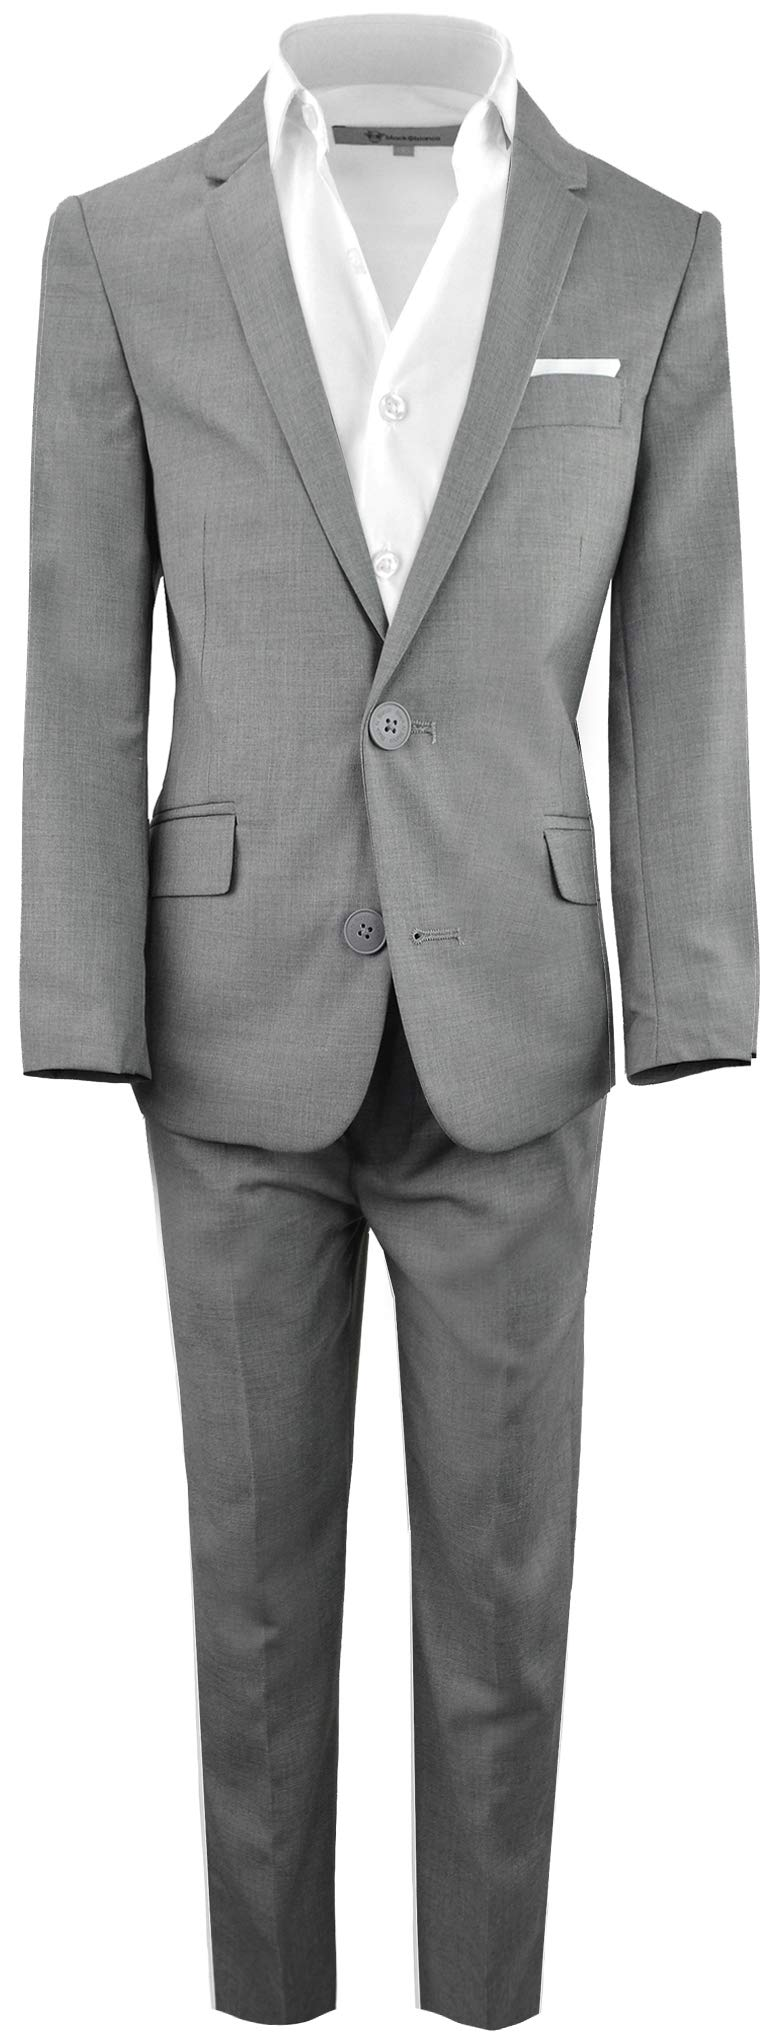 Black n Bianco Boys' First Class Slim Fit Suits Lightweight Style. Presented by Baby Muffin (10, Rustic Gray)